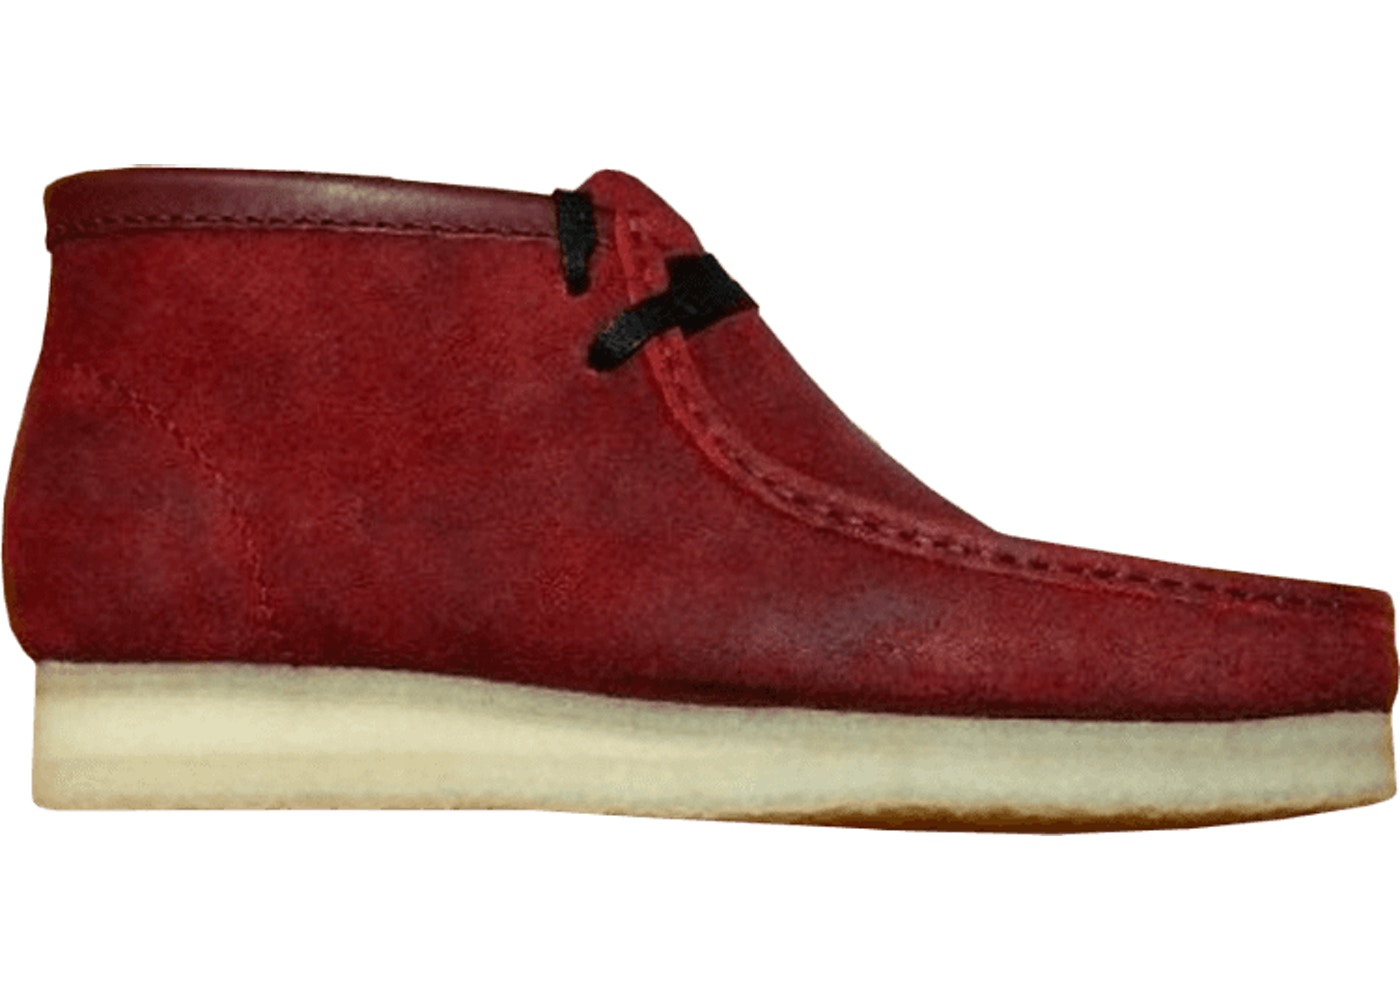 7e260e77246 Clarks Wallabee Bait Breaking Bad Felina